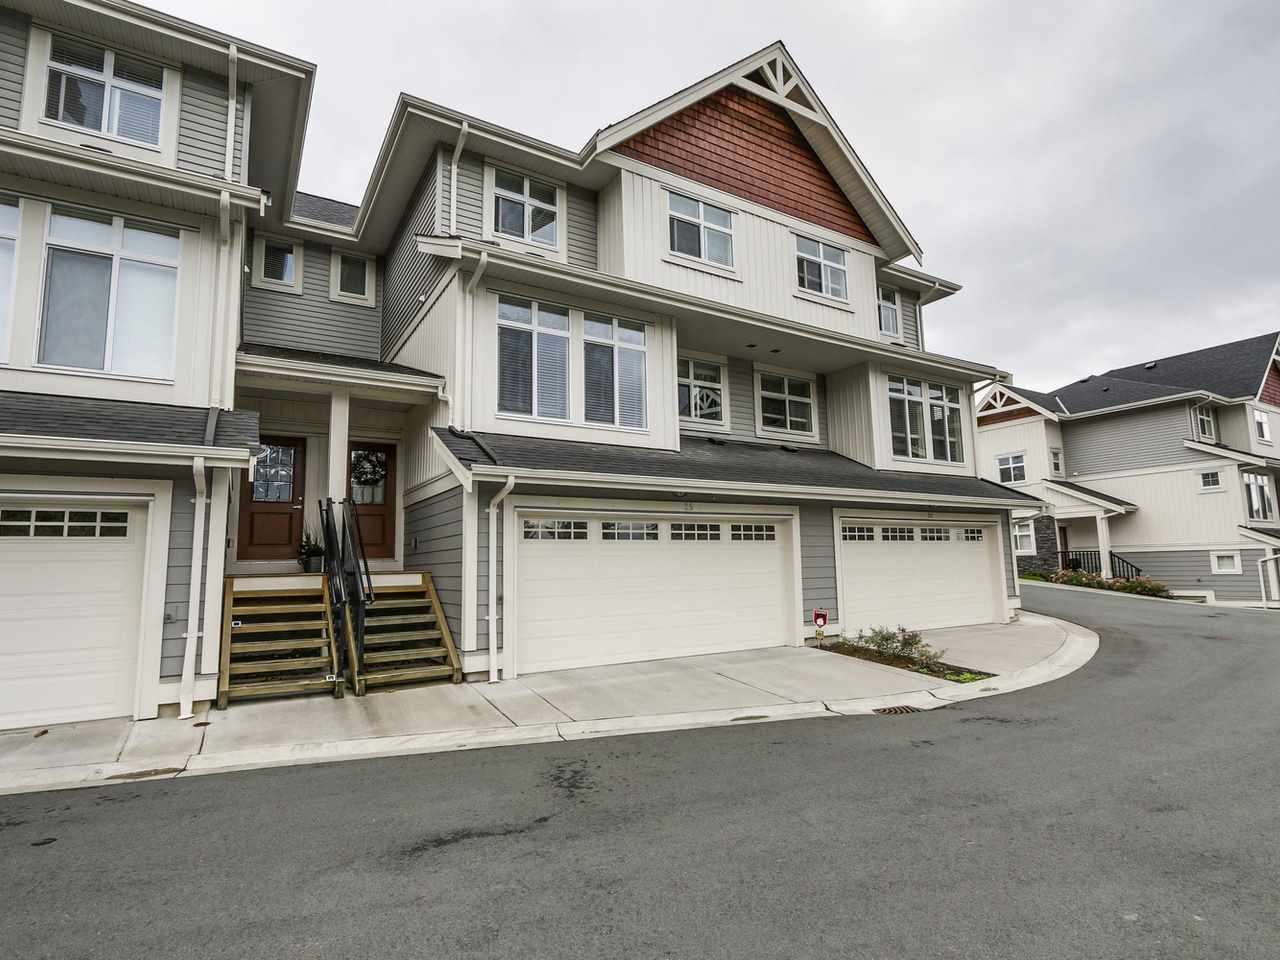 Main Photo: 25 7198 179 STREET in : Cloverdale BC Townhouse for sale : MLS®# R2114634